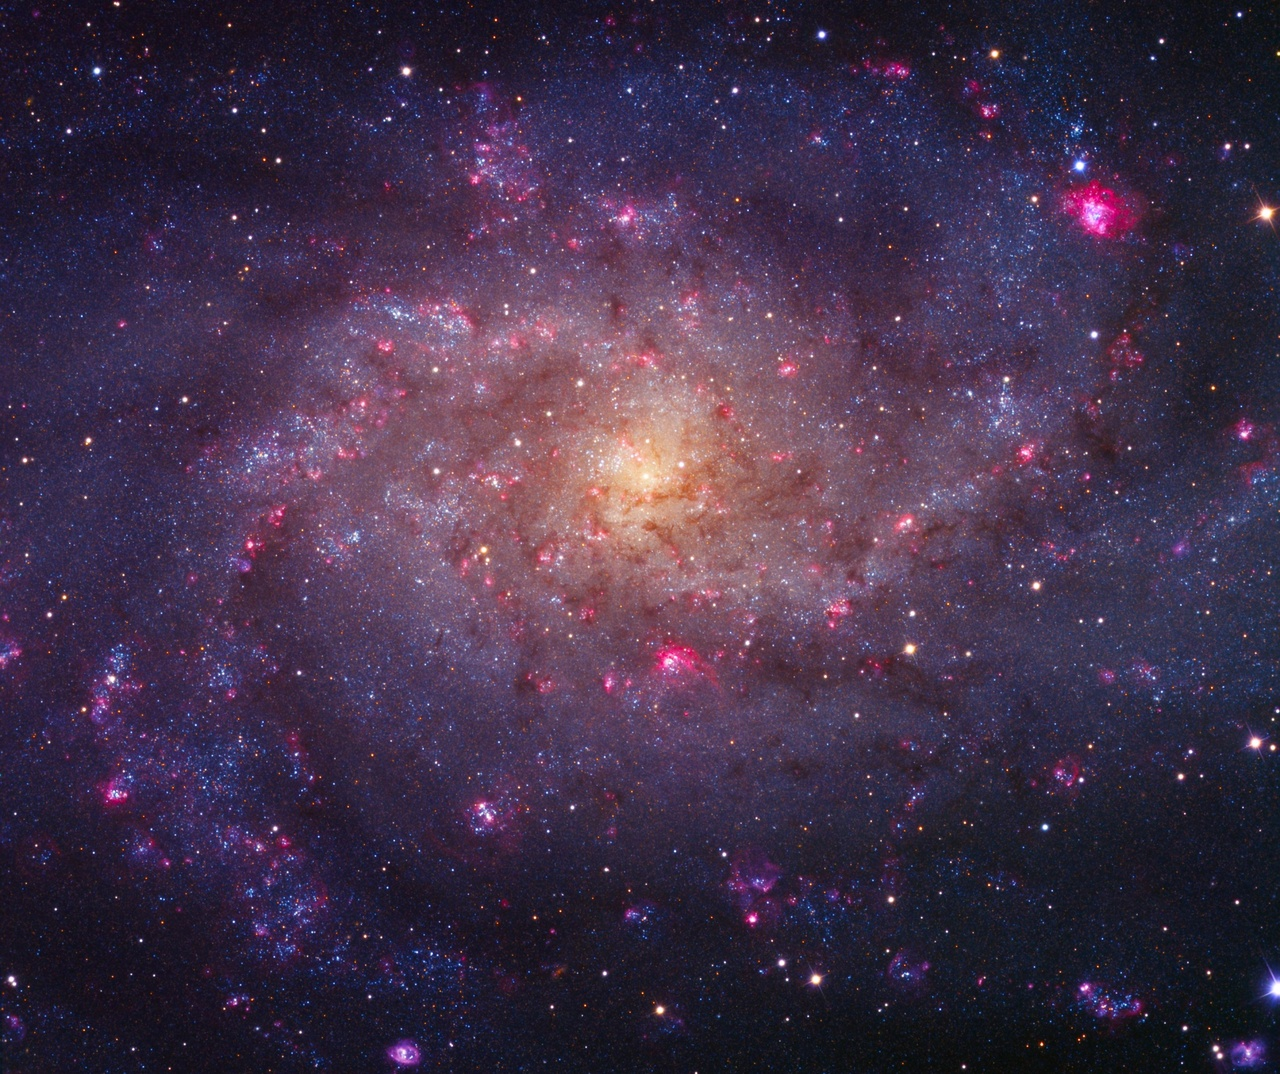 Galaxy 12801074 129445 HD Wallpaper Res 1280x1074 DesktopAScom 1280x1074